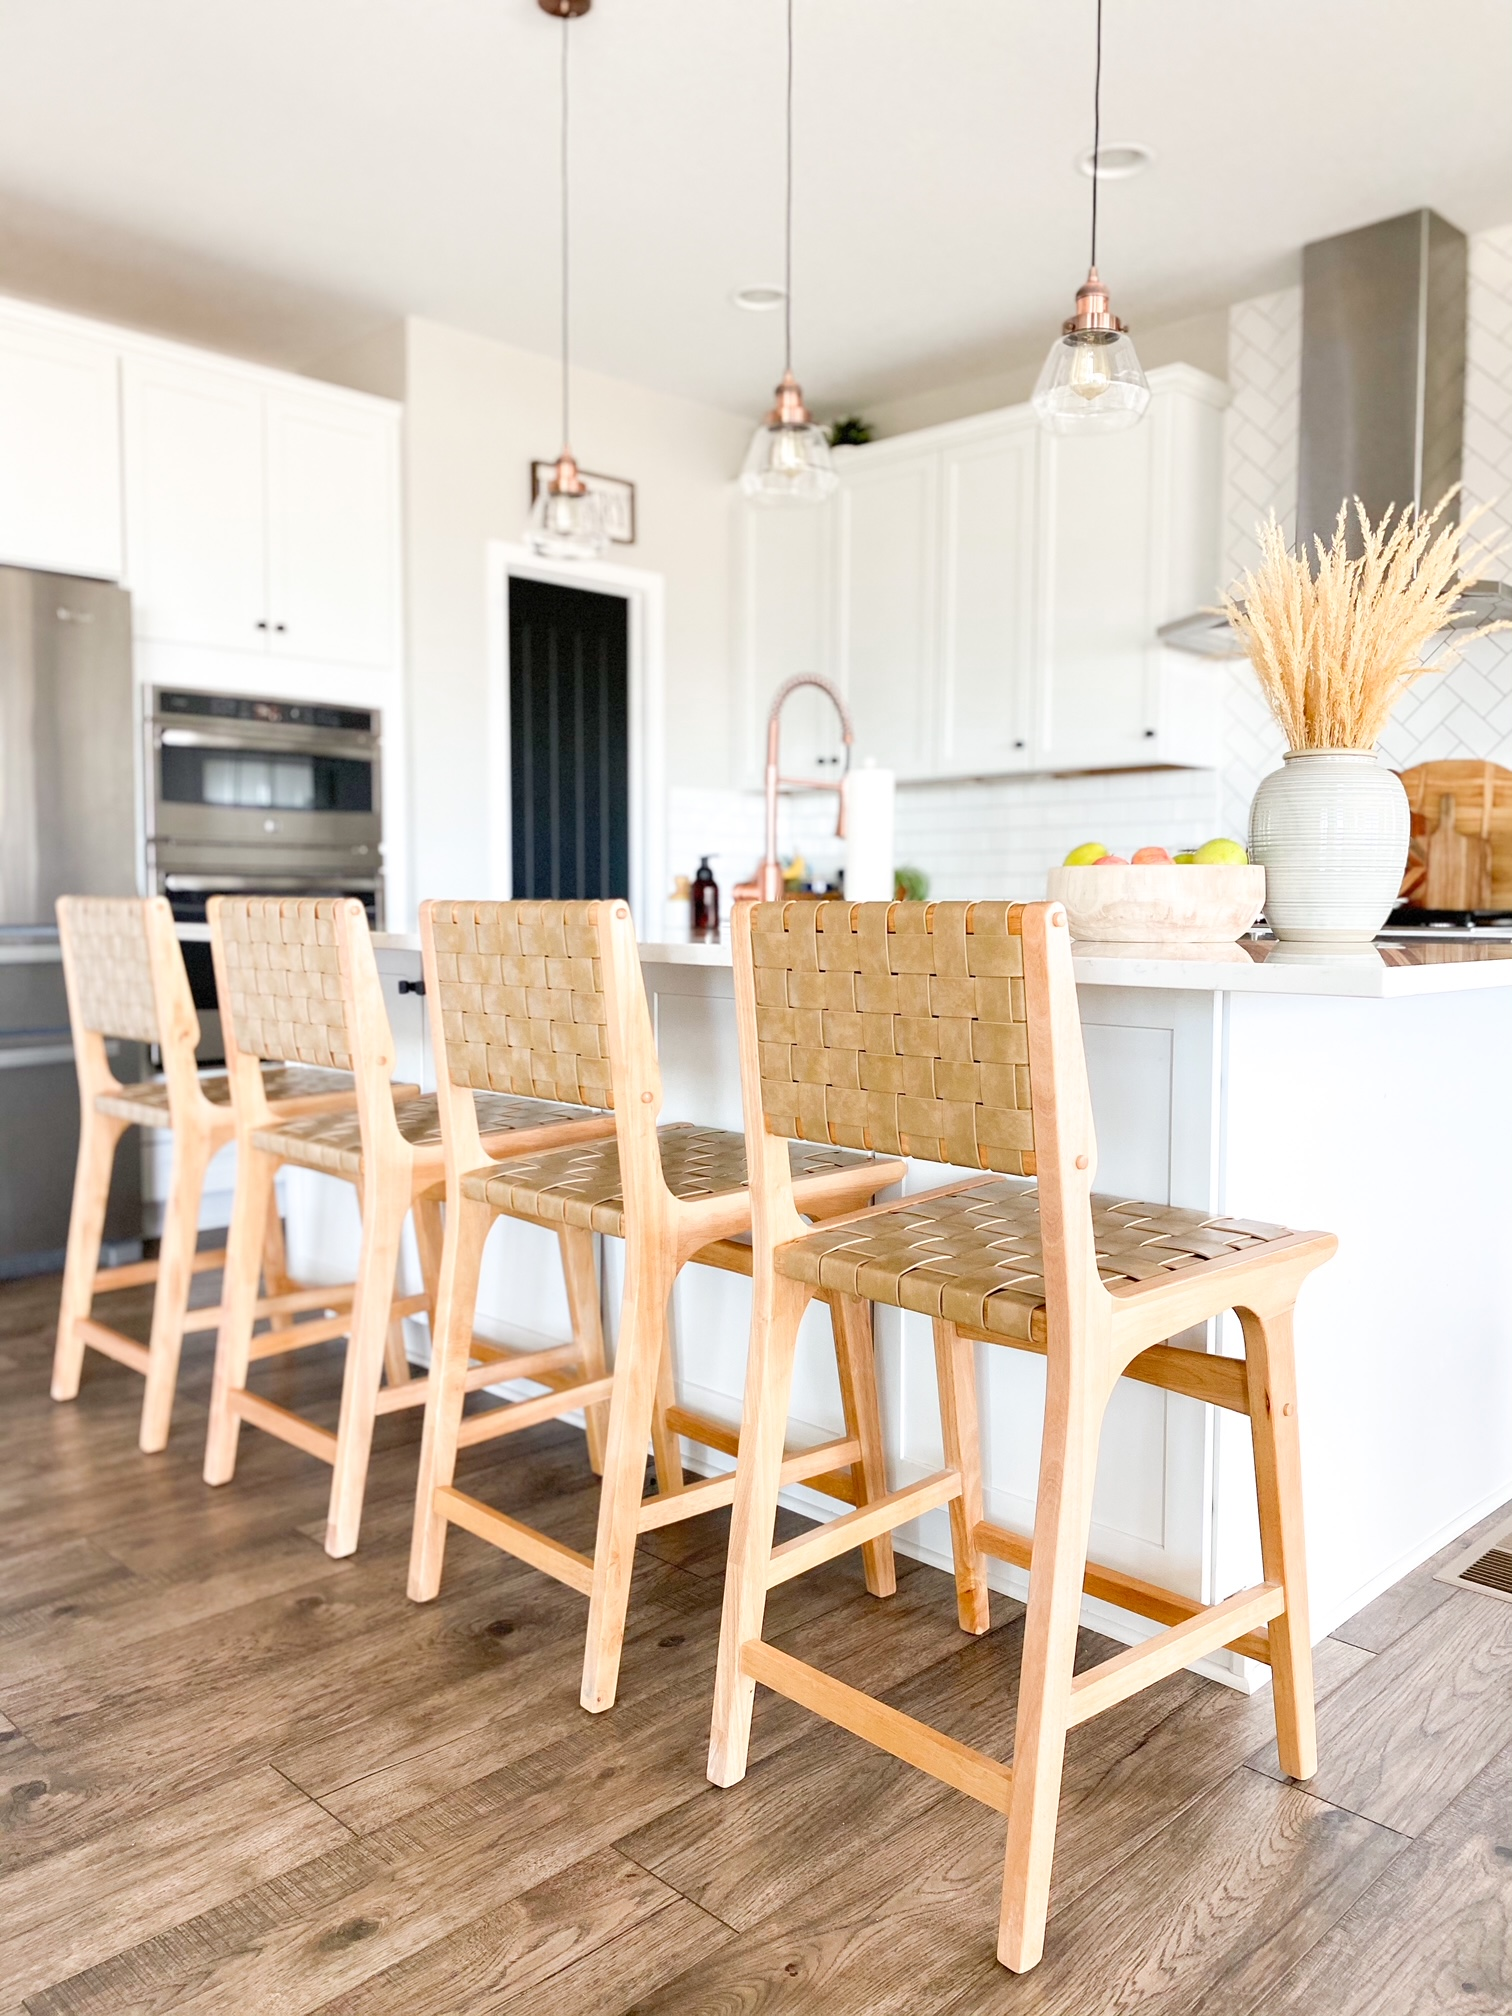 boho bar stools in an all white kitchen